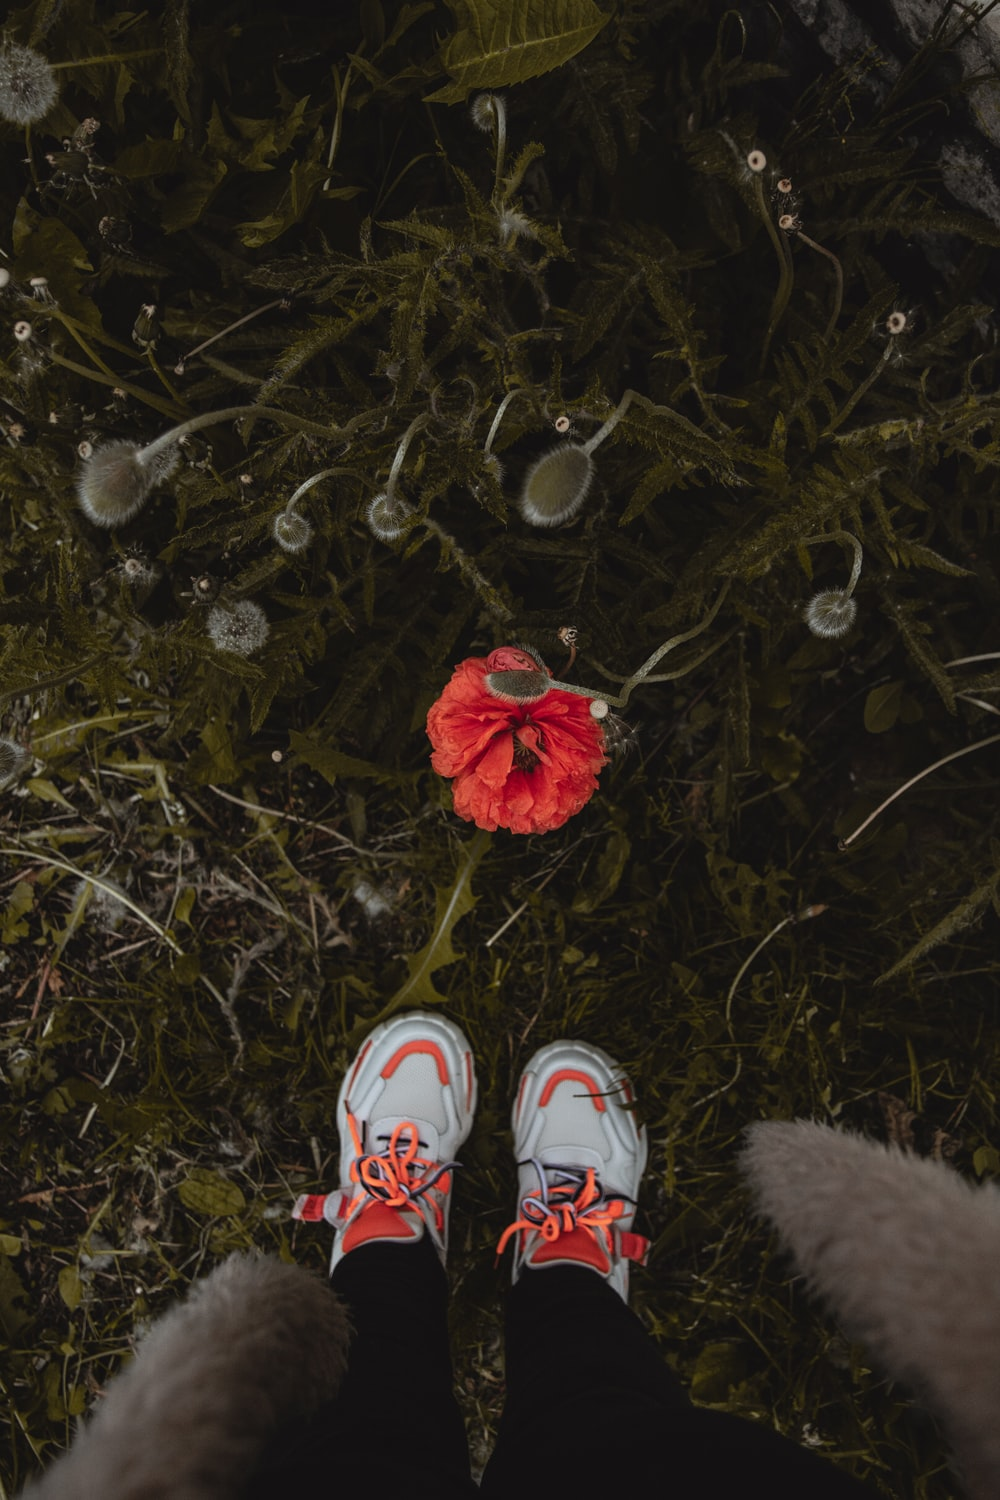 person wearing white and red sneakers standing on dried leaves